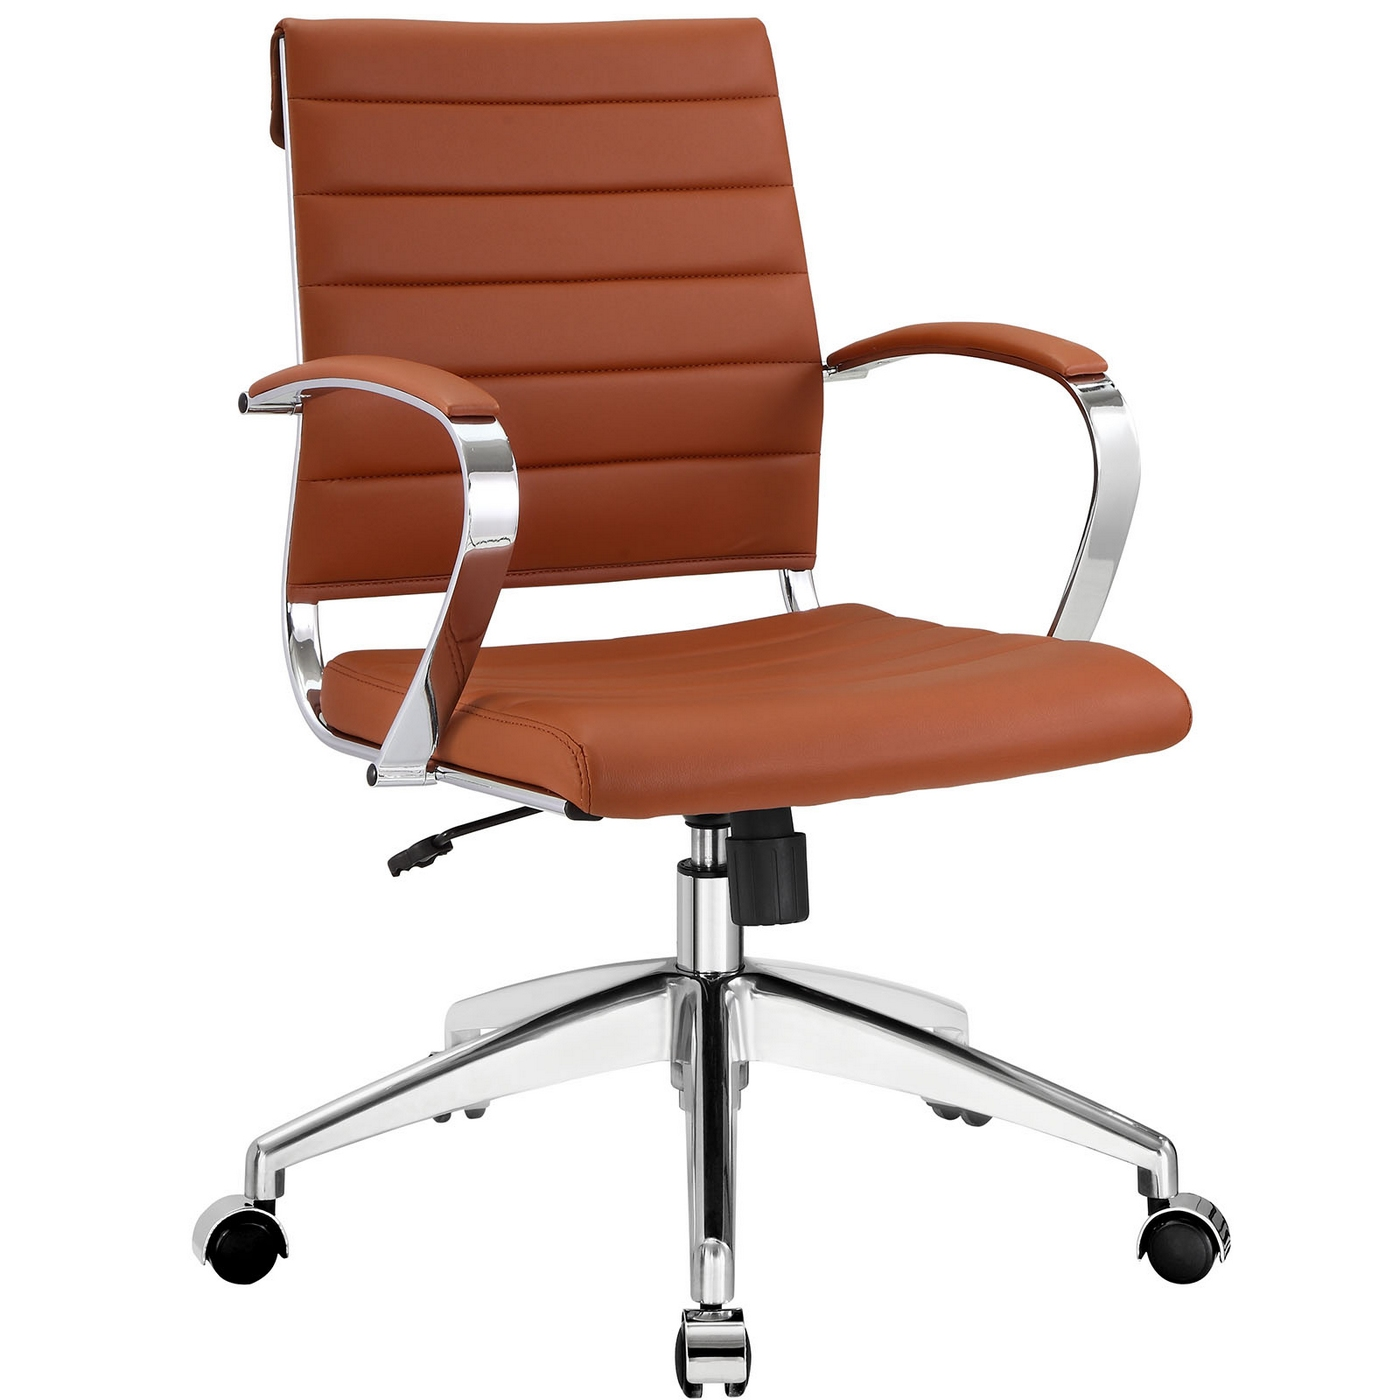 Jive Modern Mid-back Ribbed Vinyl Office Chair With Chrome ...